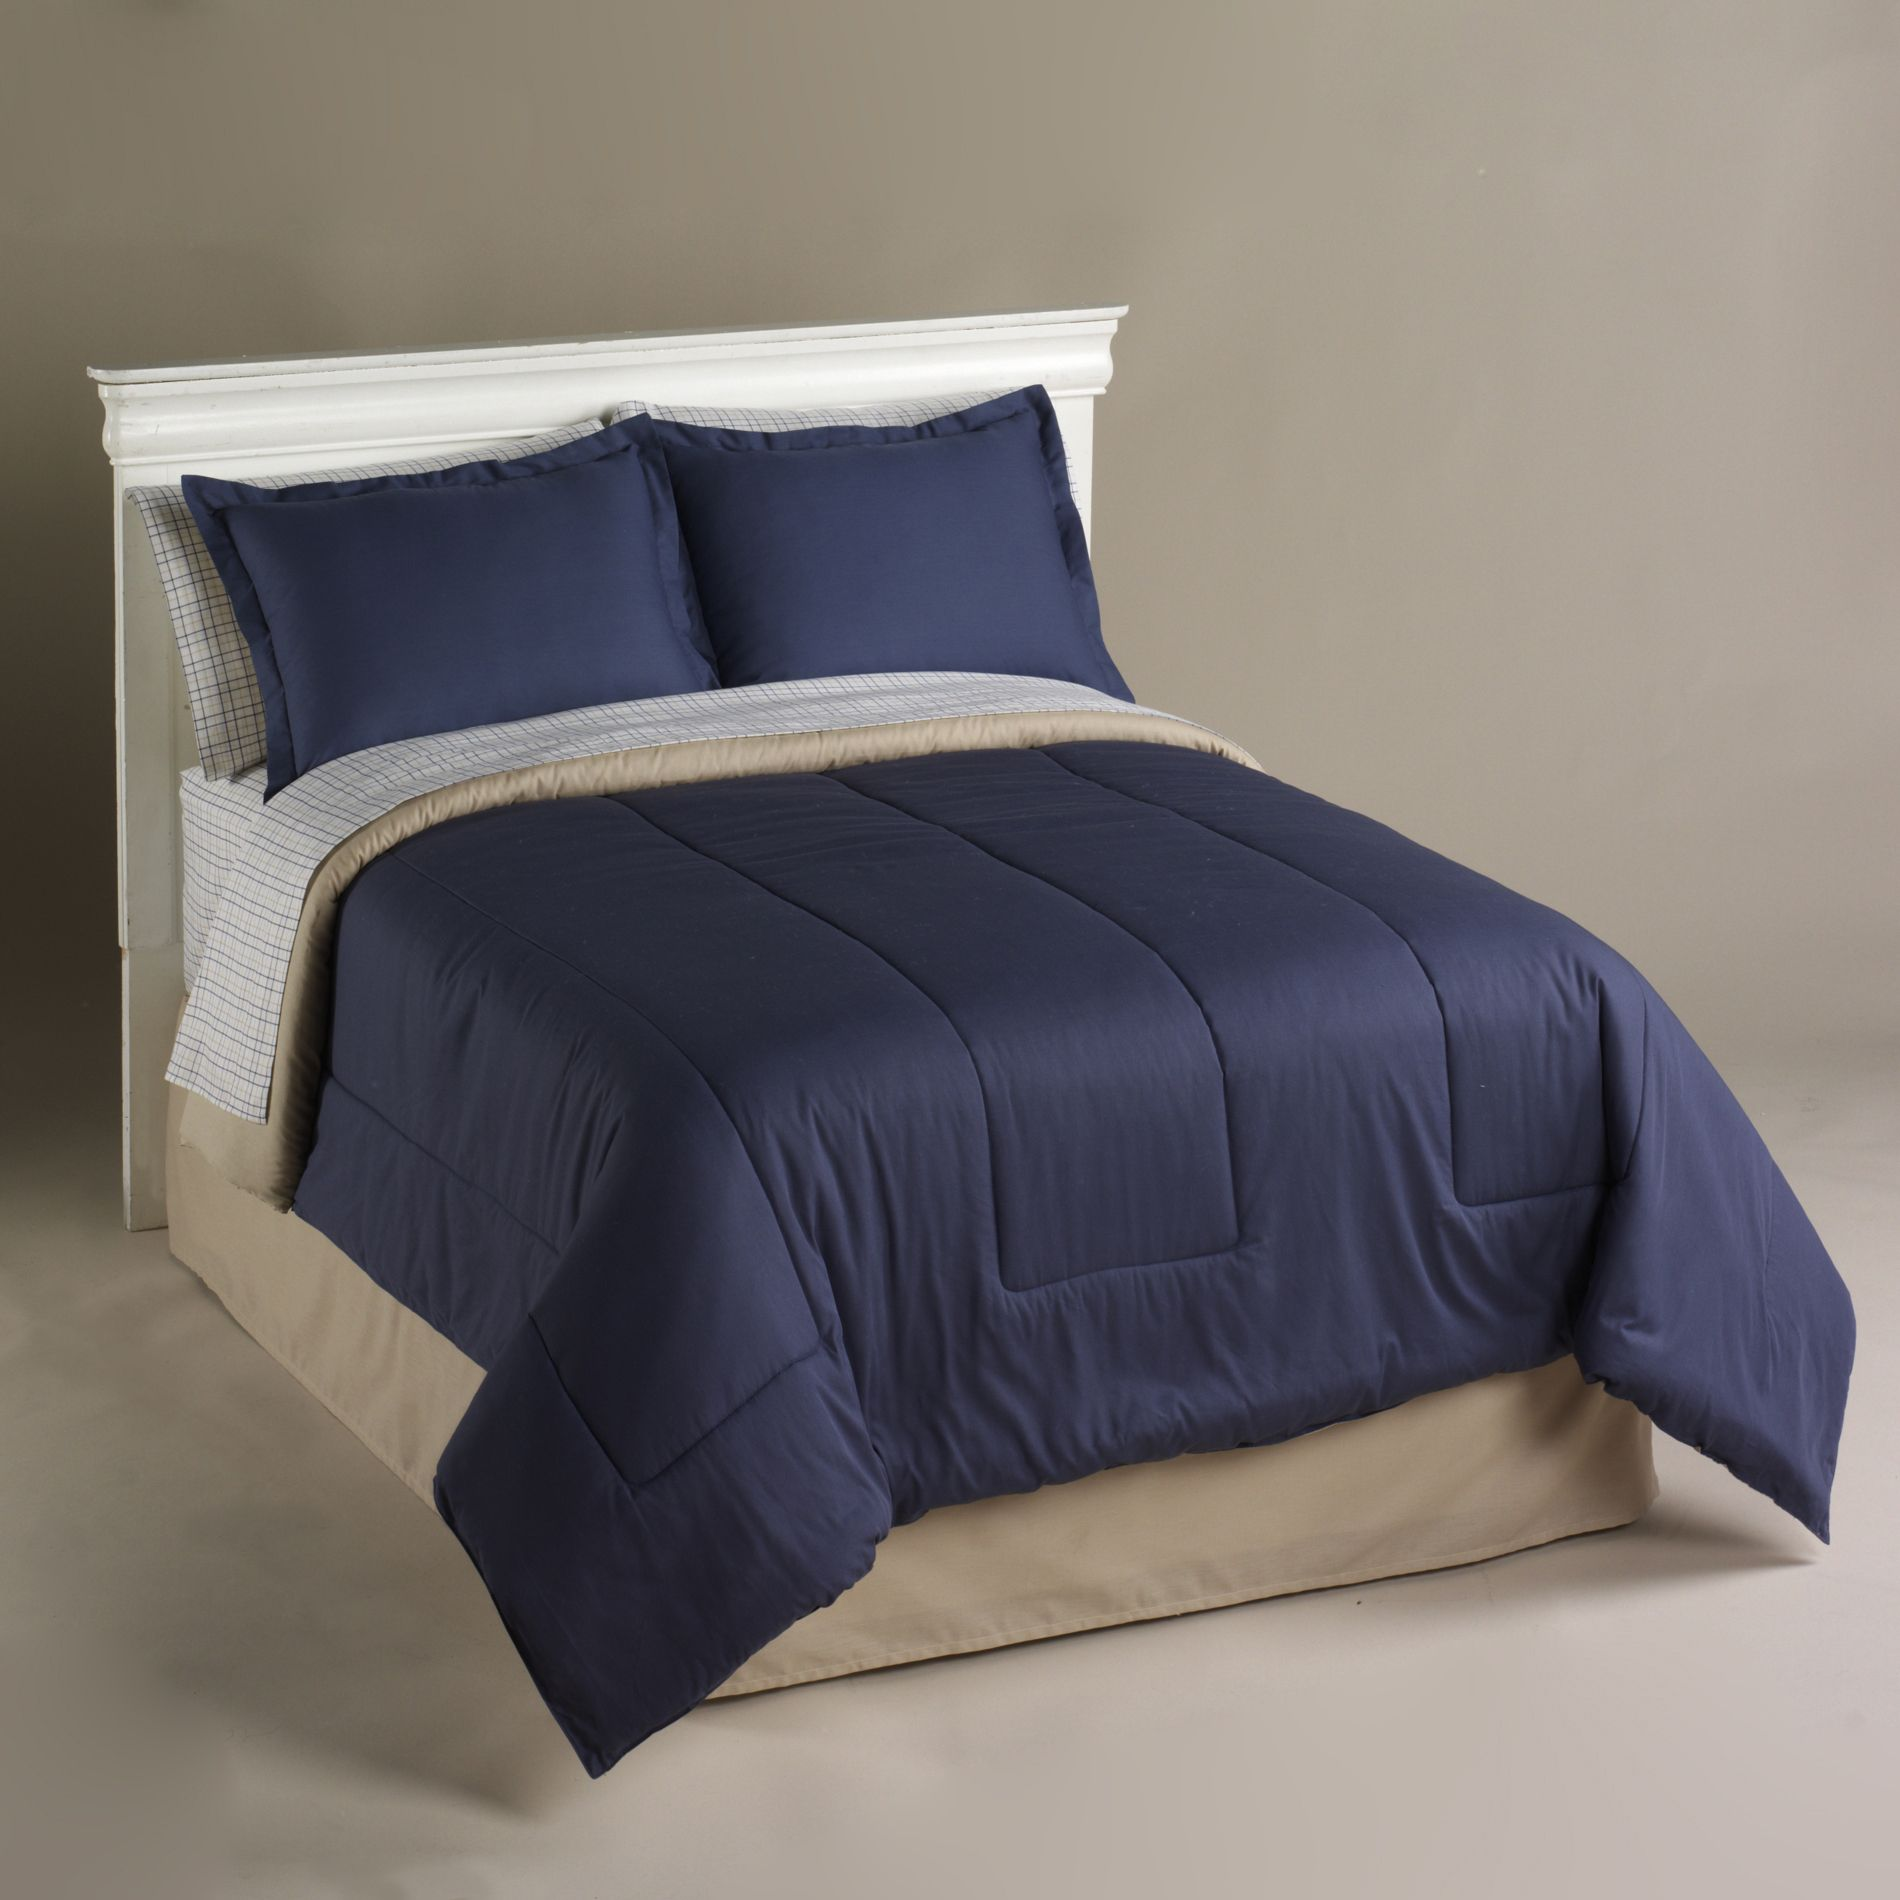 Cannon  Khaki and Navy Plaid Sheet Set